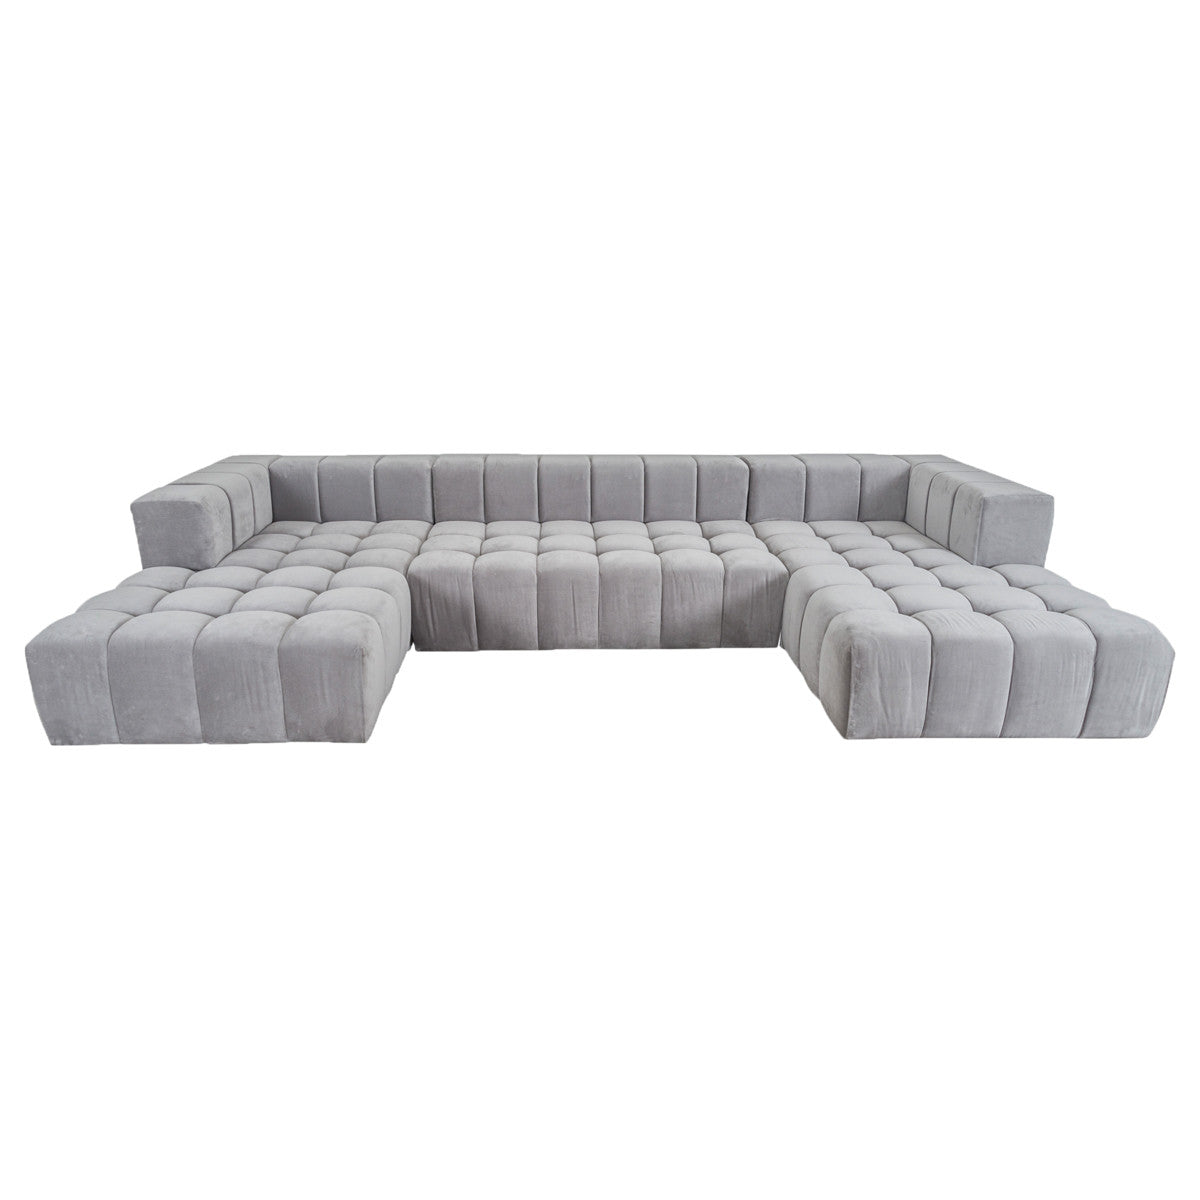 Modular light gray upholstered sectional sofa with double chaise lounges, a low back, straight sides, button tufted cushions and a channel tufted back.